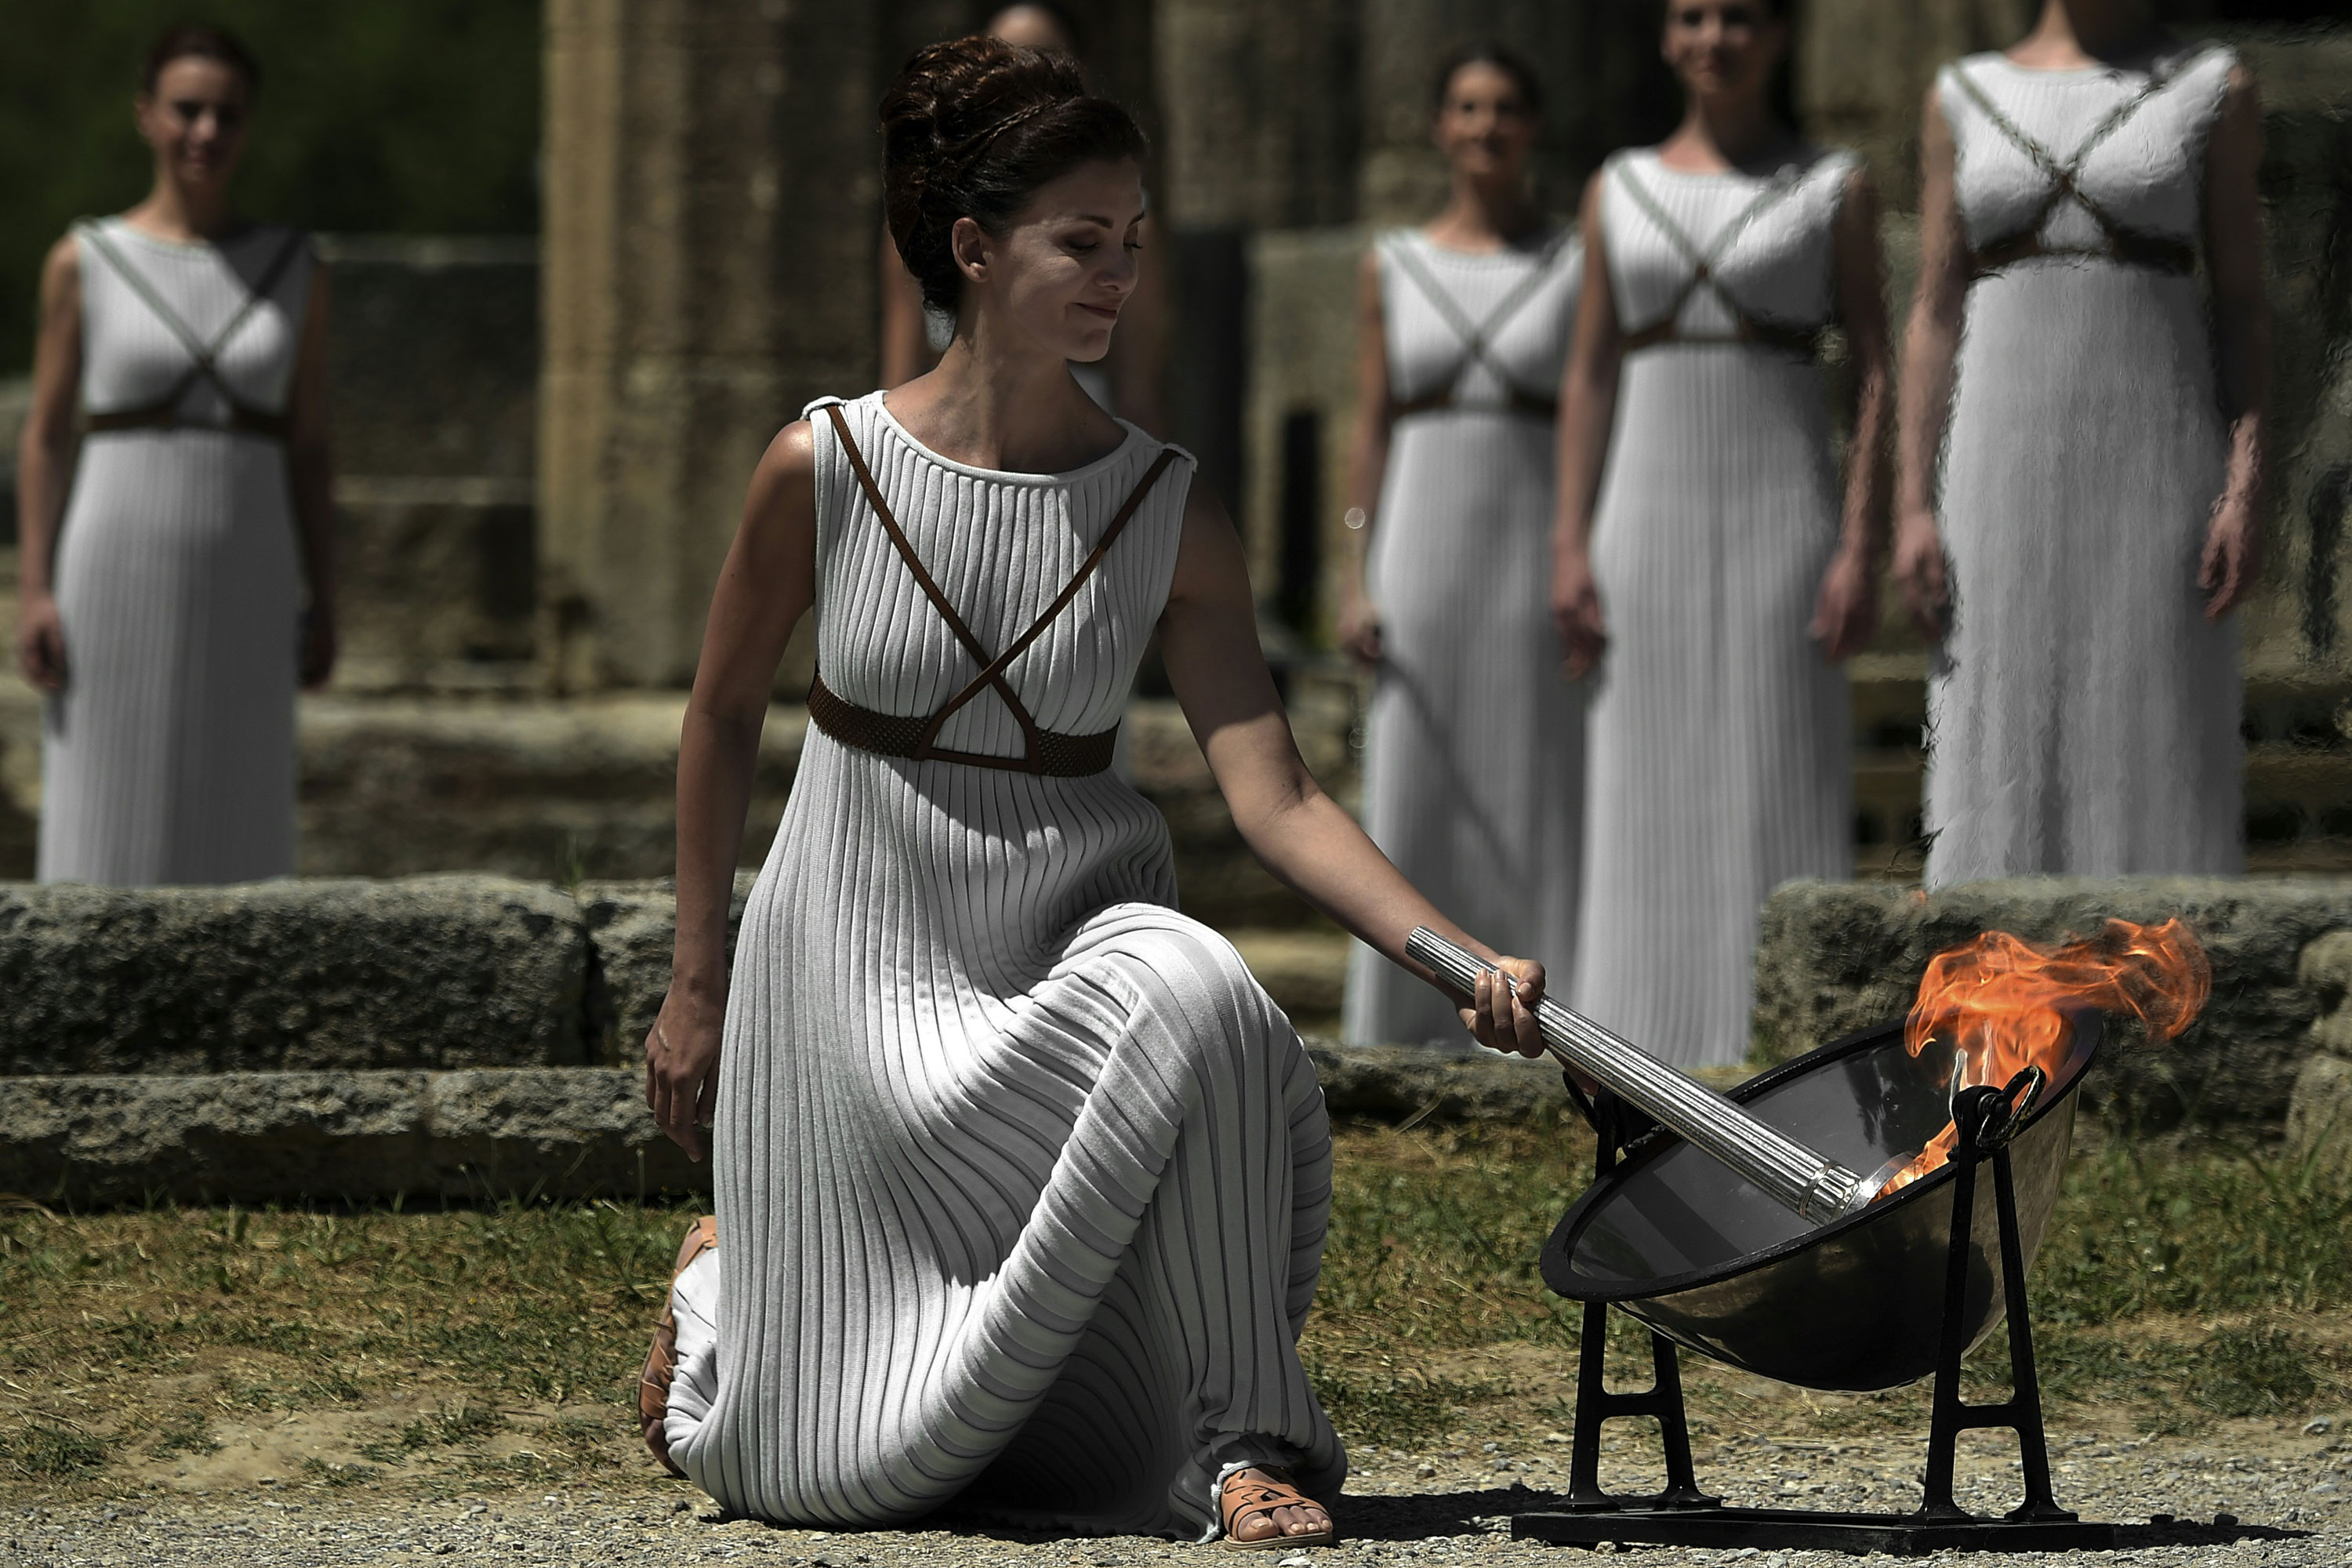 """The flame for South America's first Olympics has been lit at the birthplace of the ancient games in Greece, starting a 15-week journey culminating in the August 5 opening ceremony in Rio de Janeiro.<br style=""""box-sizing: border-box;"""" />"""